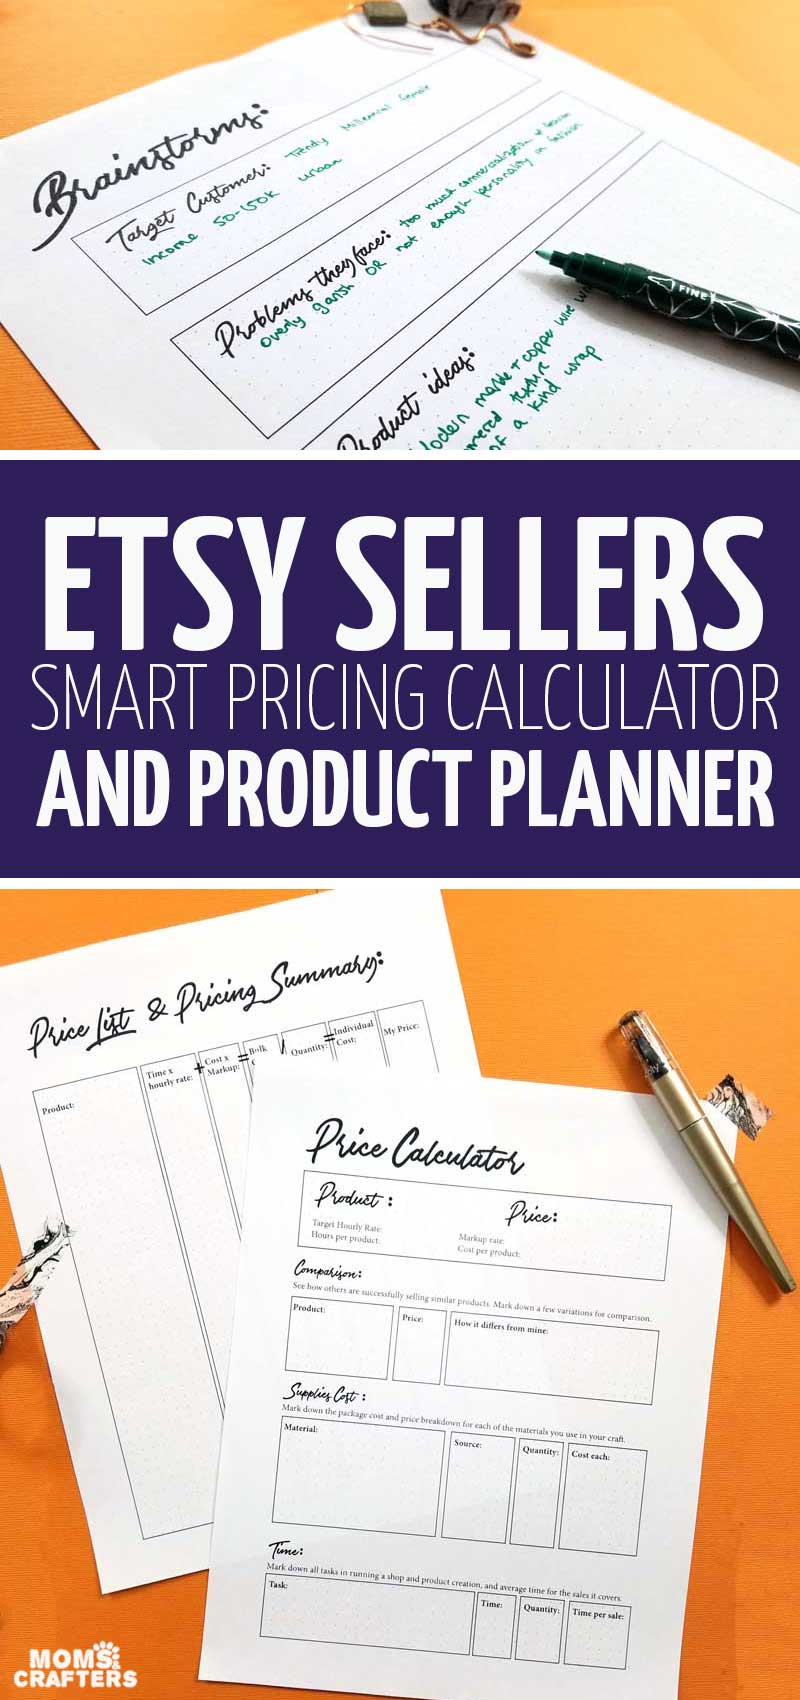 Download this smart pricing calculator for Etsy sellers that takes into account EVERYTHING! This is such a cool handmade goods calculator and crafting calculator for selling handmade jewelry, leather crafts, printables -anything really!